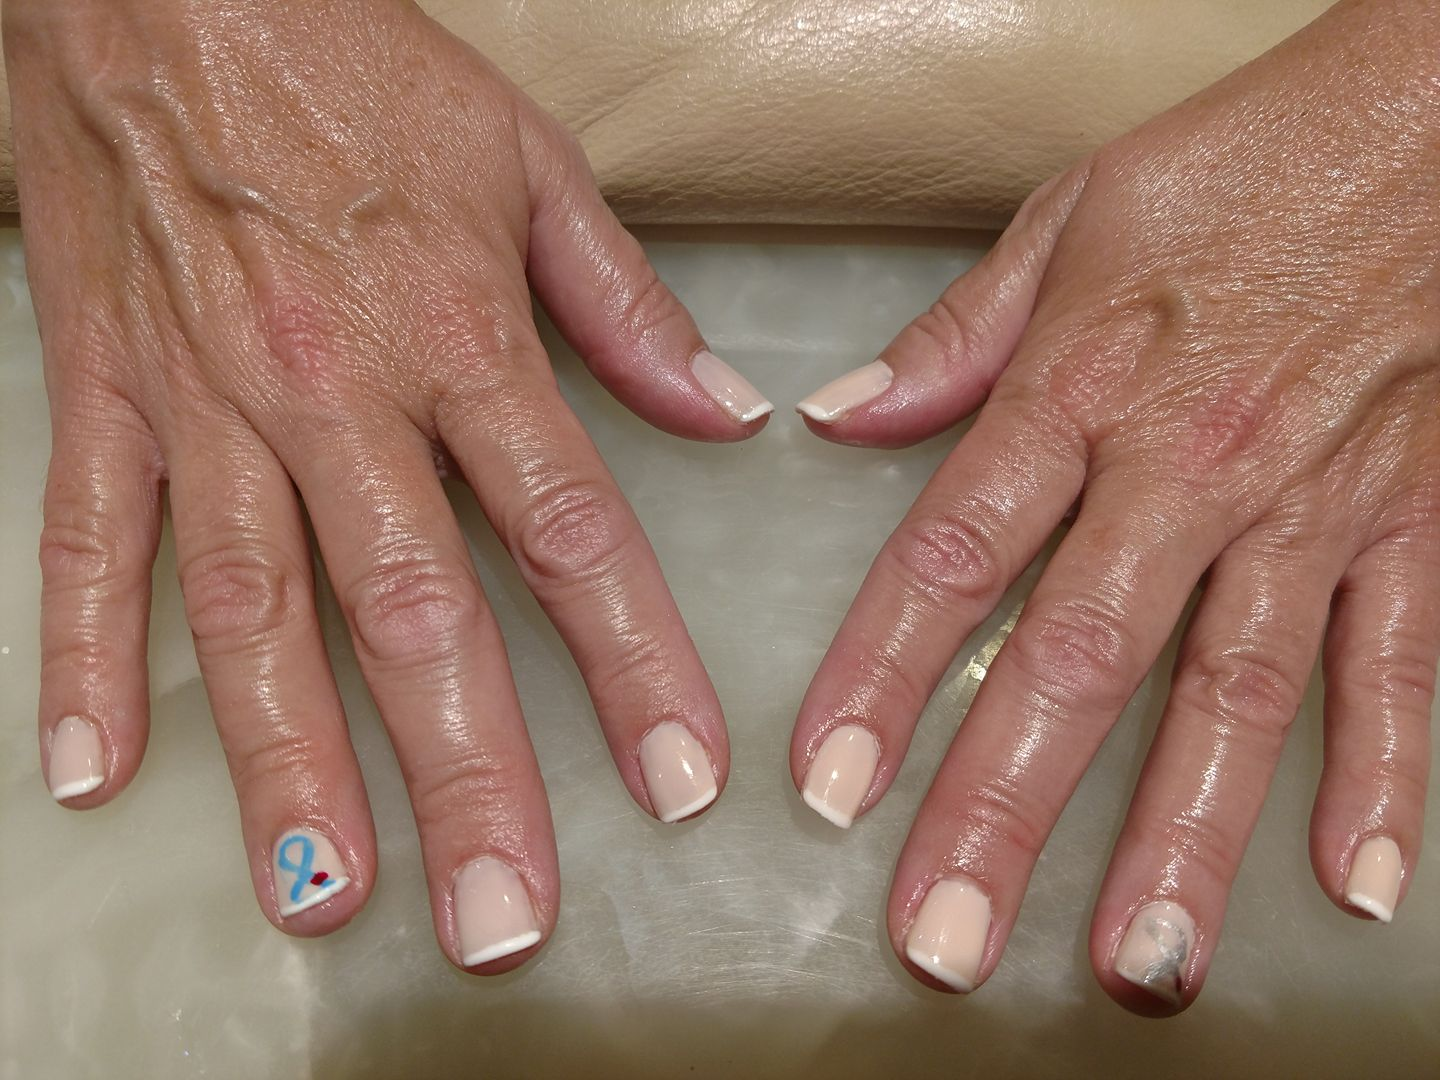 lady's fingers with painted nails